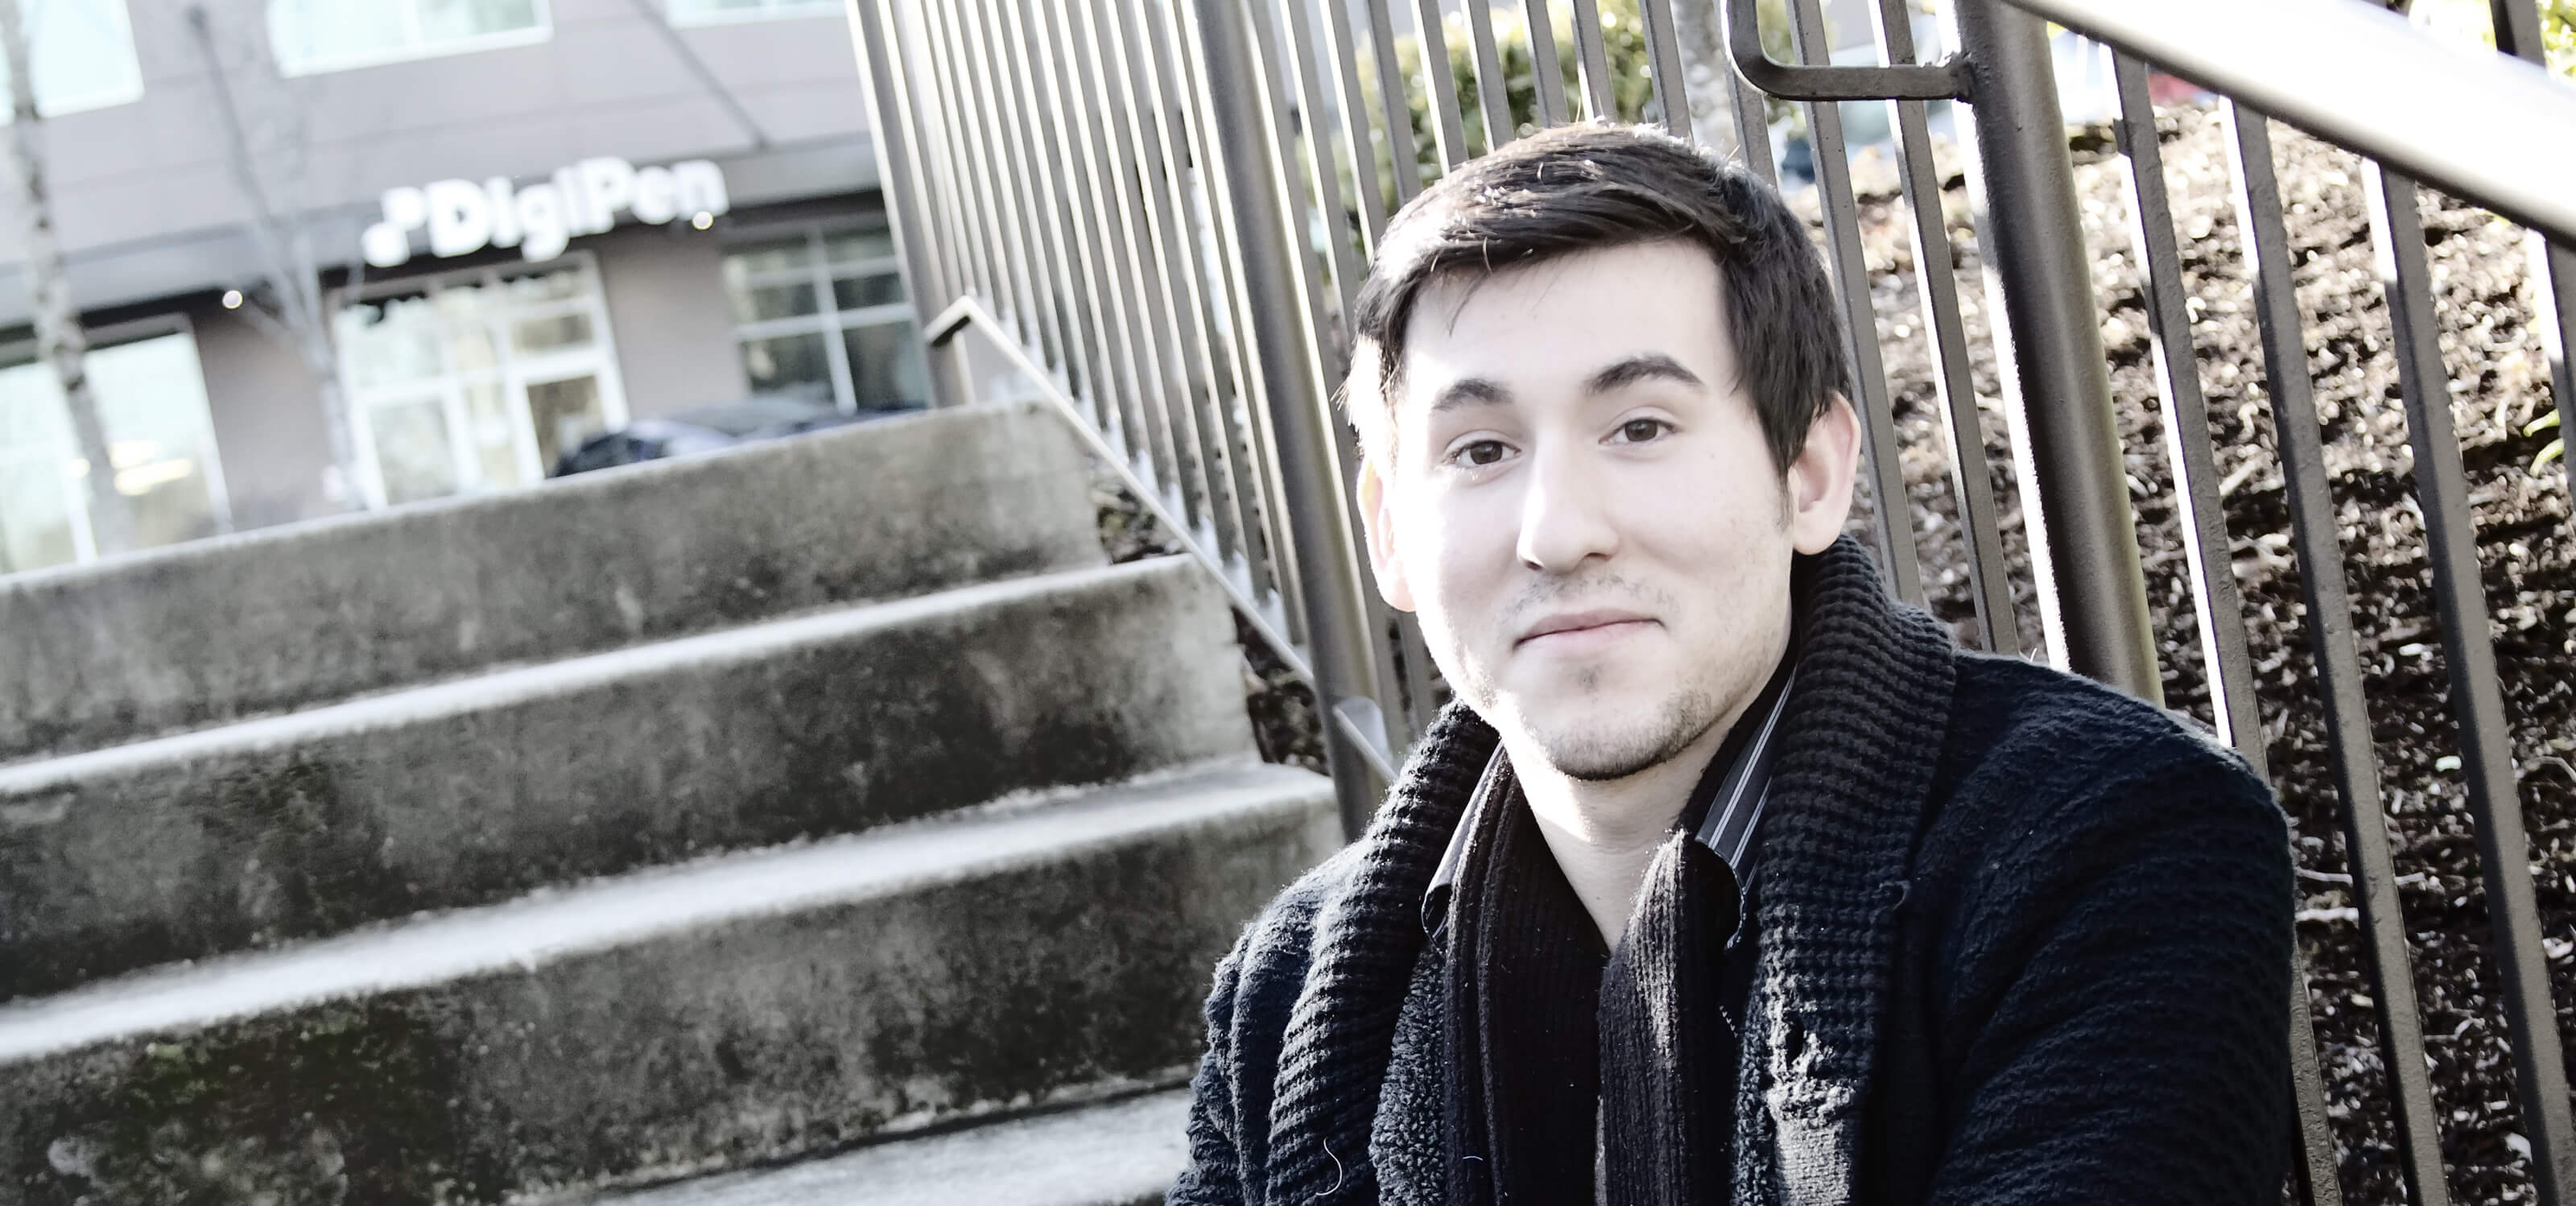 DigiPen student Andrew Alvarez posing on stairs outside the DigiPen building